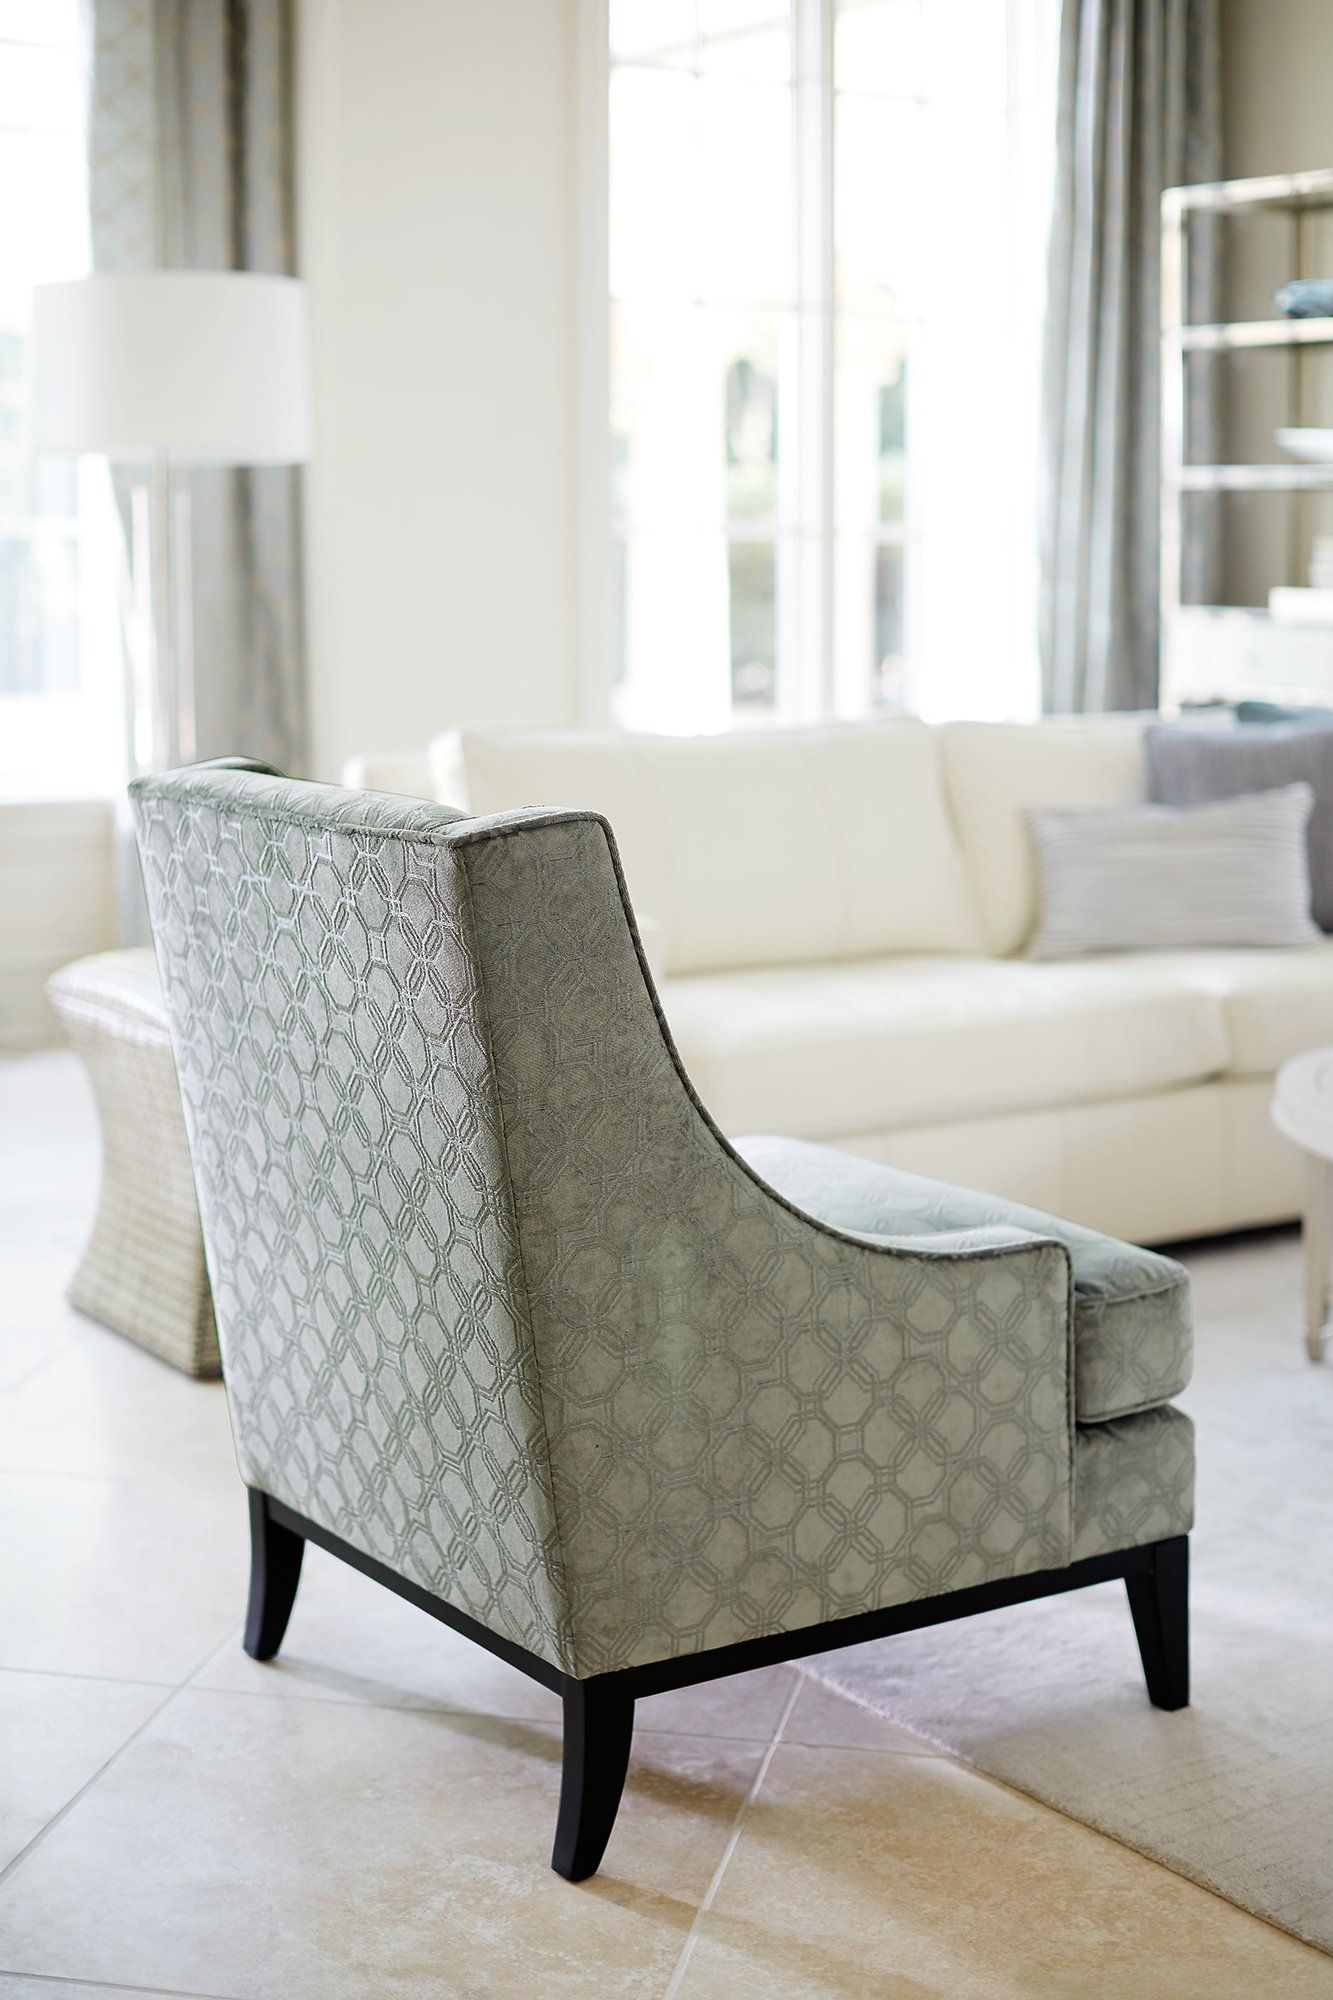 Bernhardt Lancaster Chair in a pale blue woven